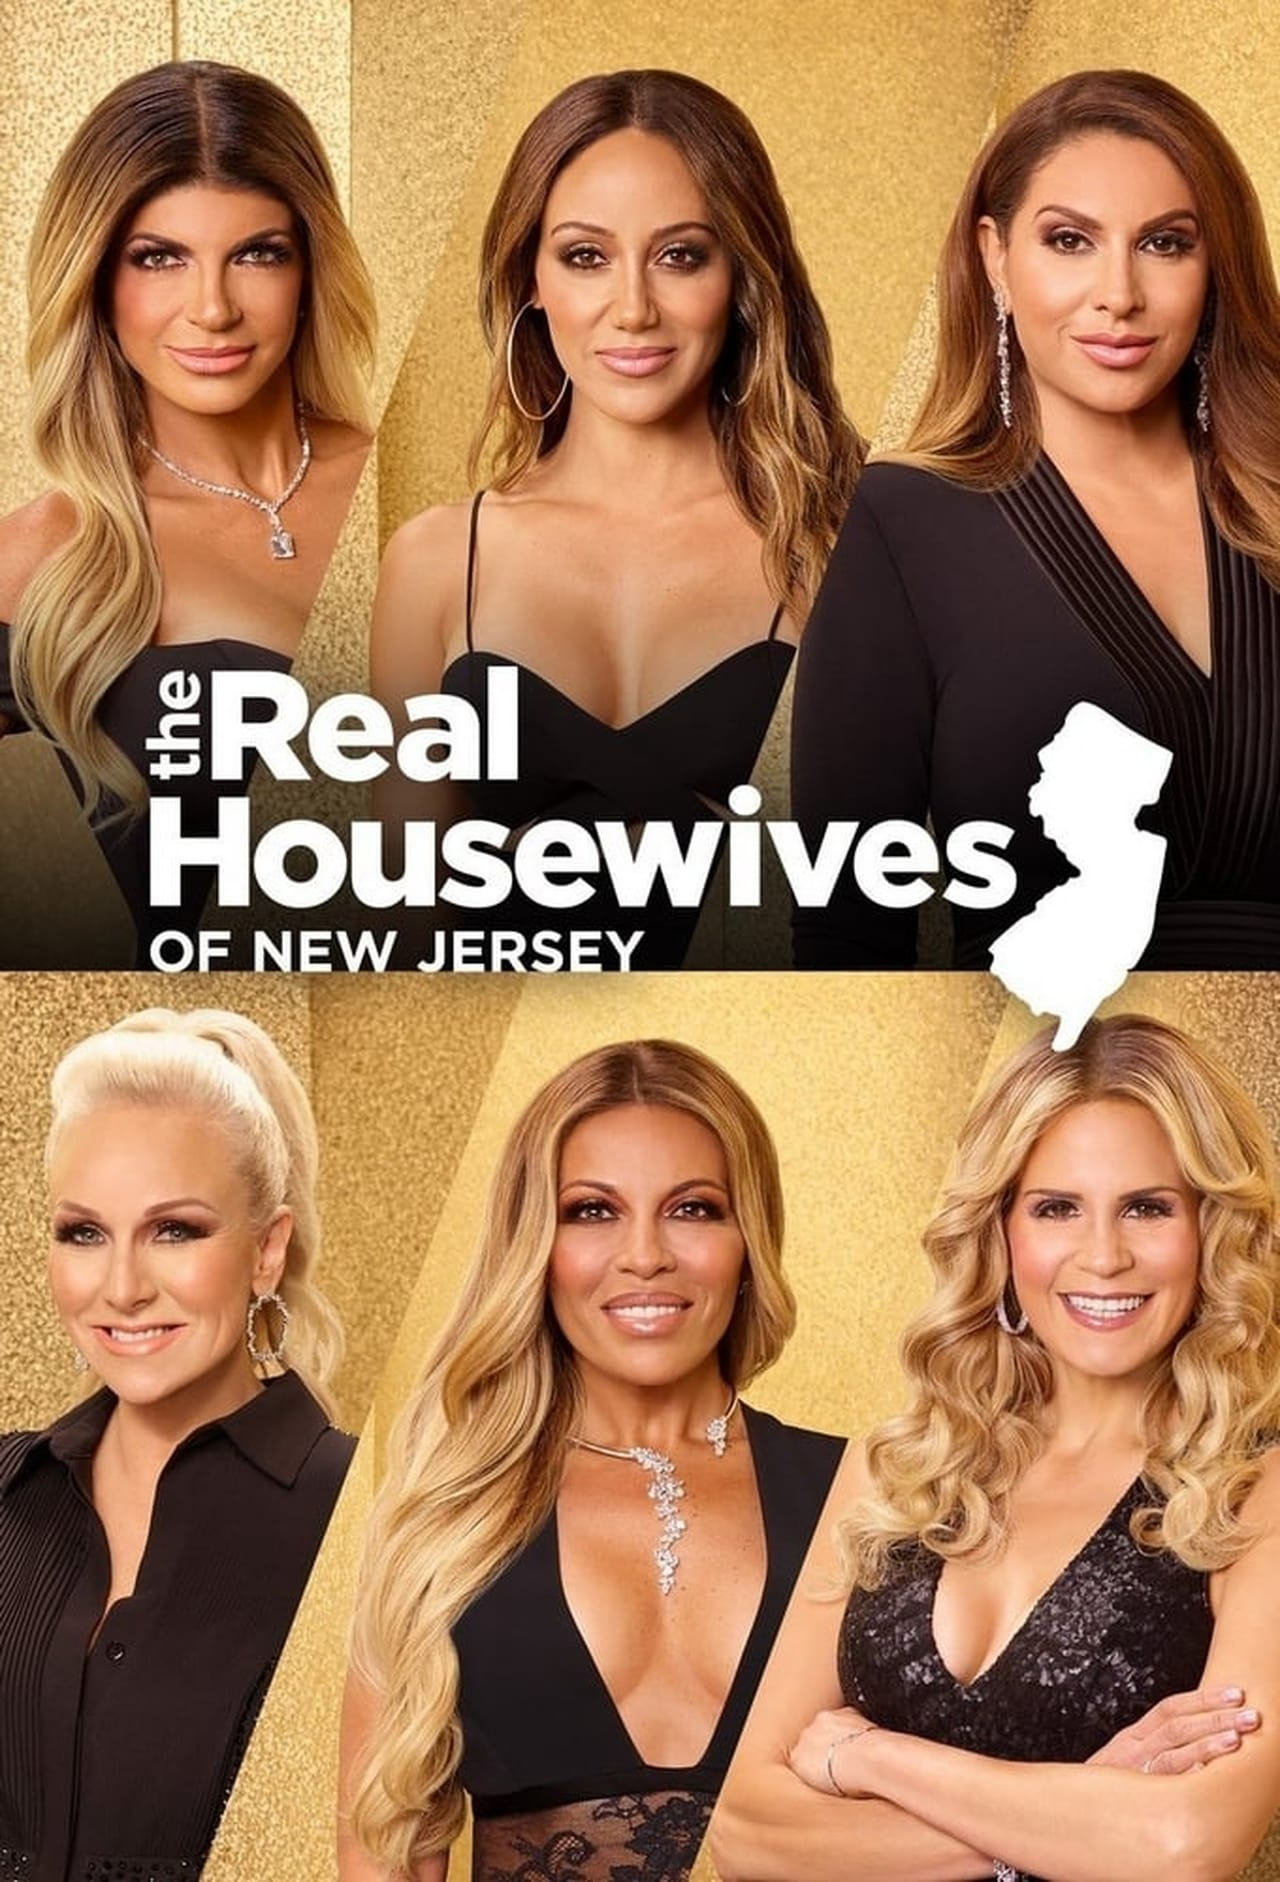 Watch The Real Housewives Of New Jersey Season 4 Online